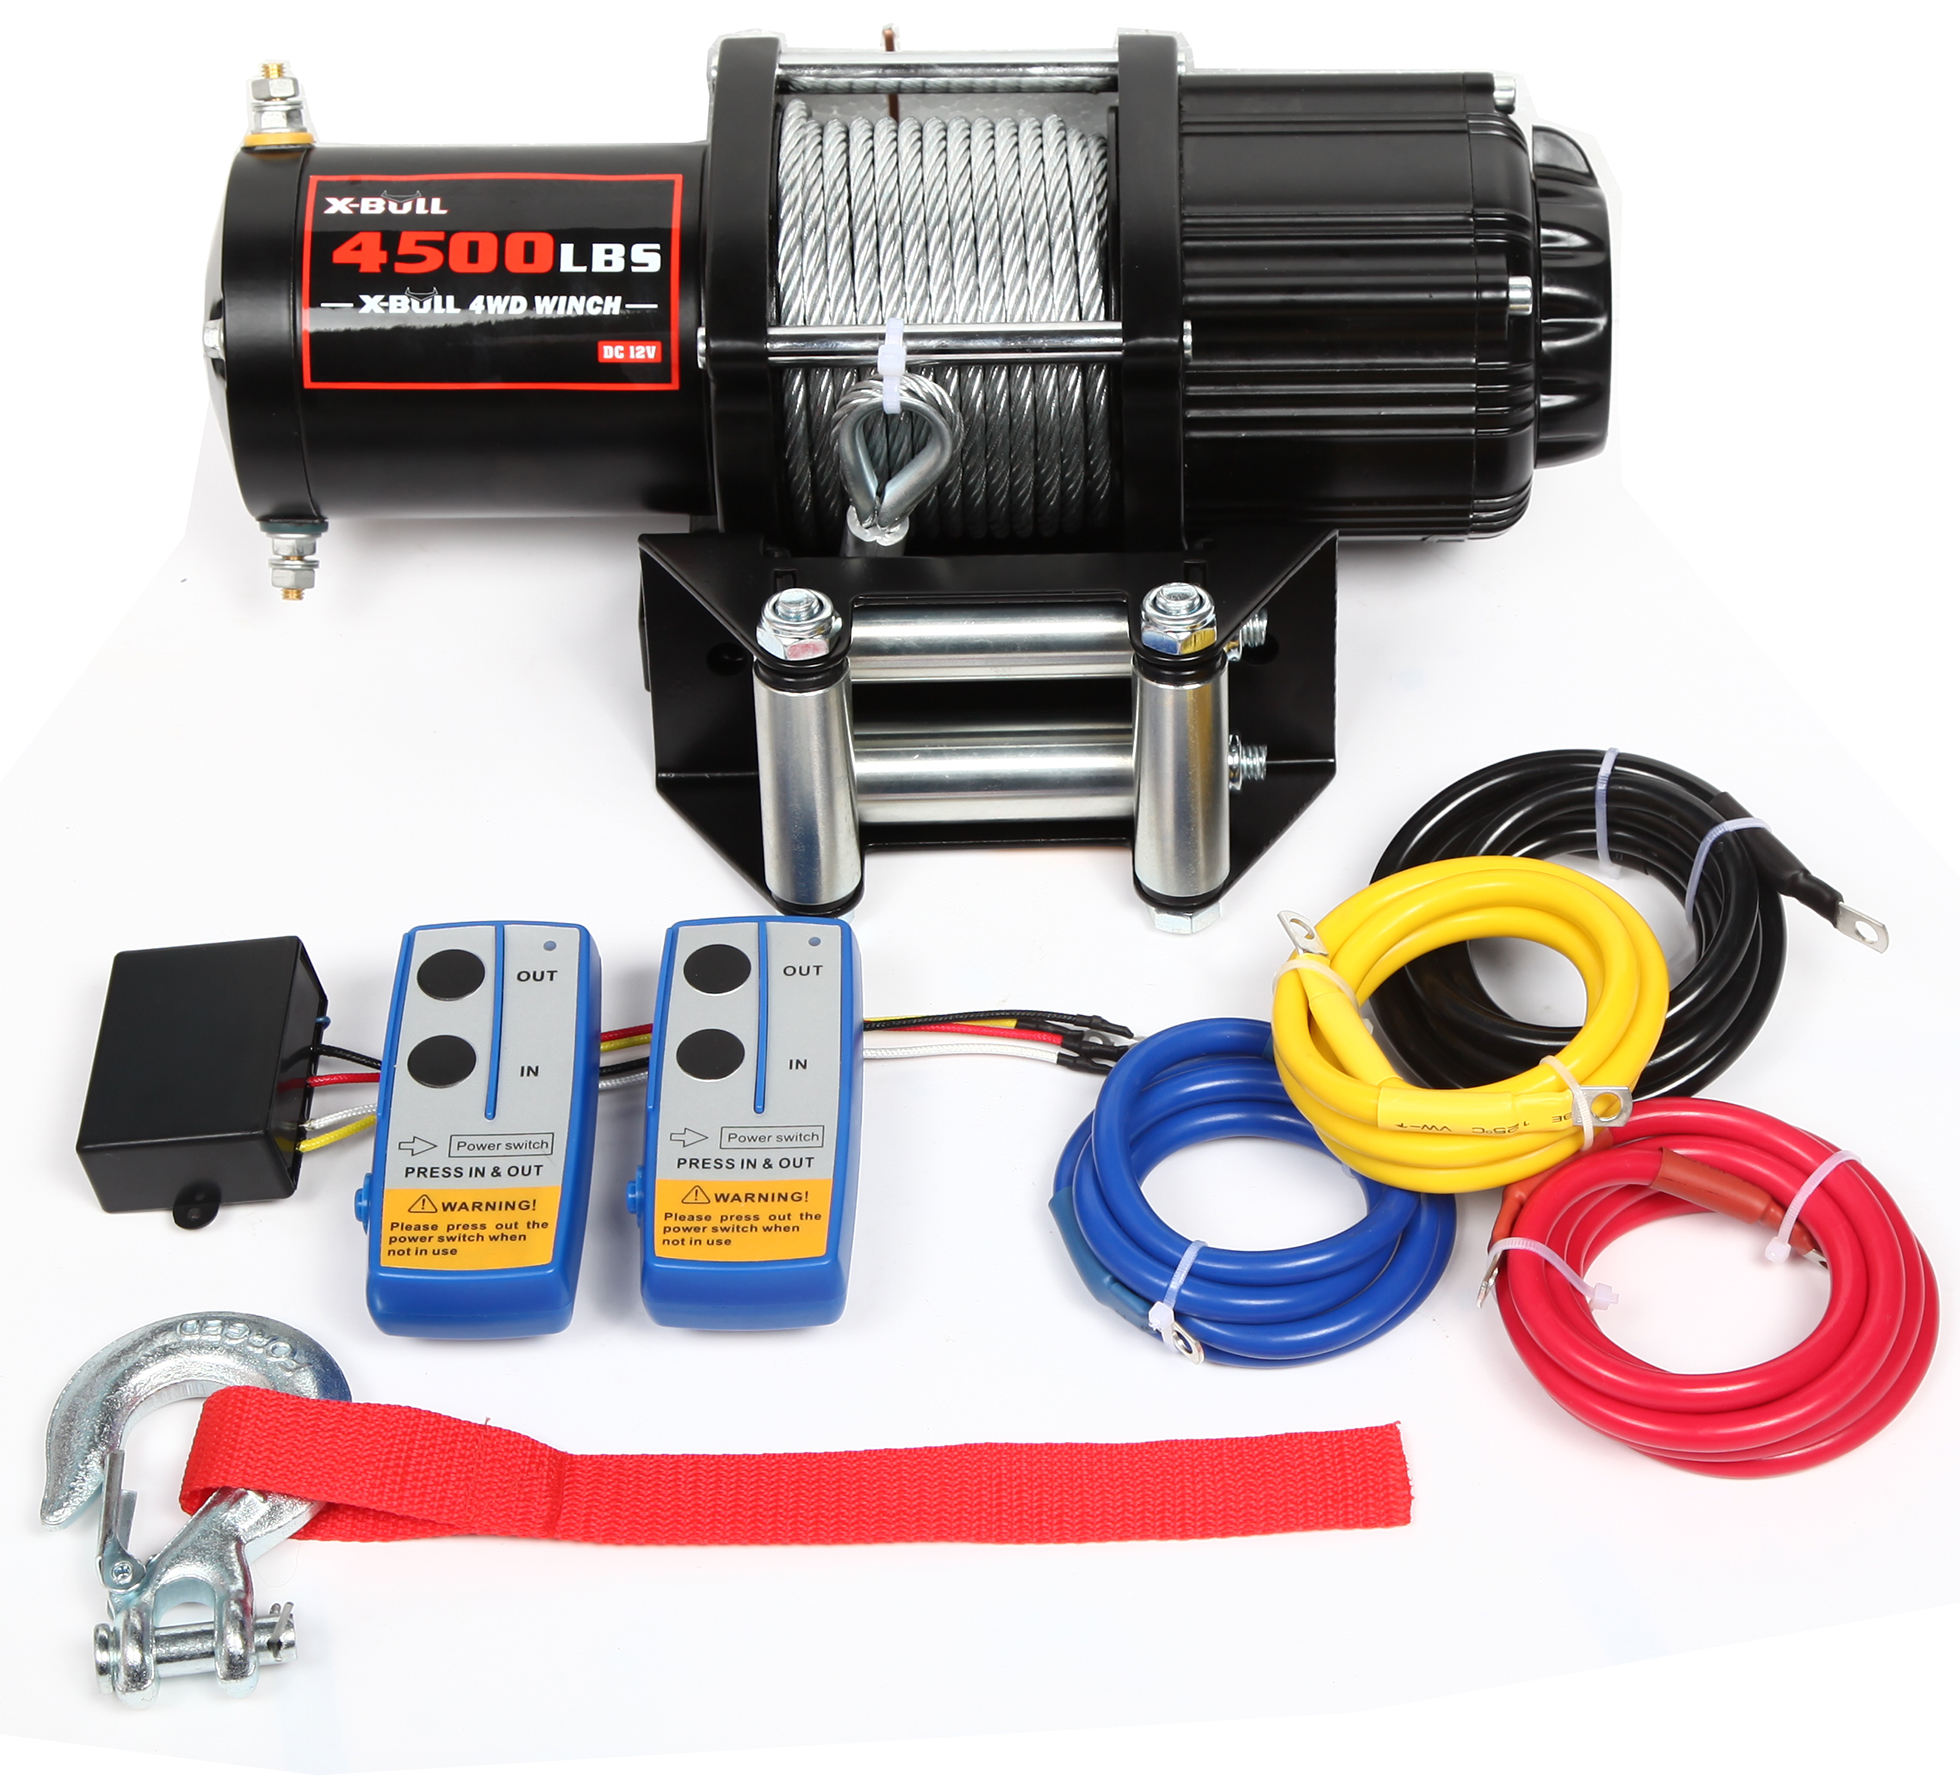 Atv Winch [ Winch Rope ] Electric Winch 12V 4500LBS/2041kg Wireless Synthetic Rope 2 Remote ATV 4WD